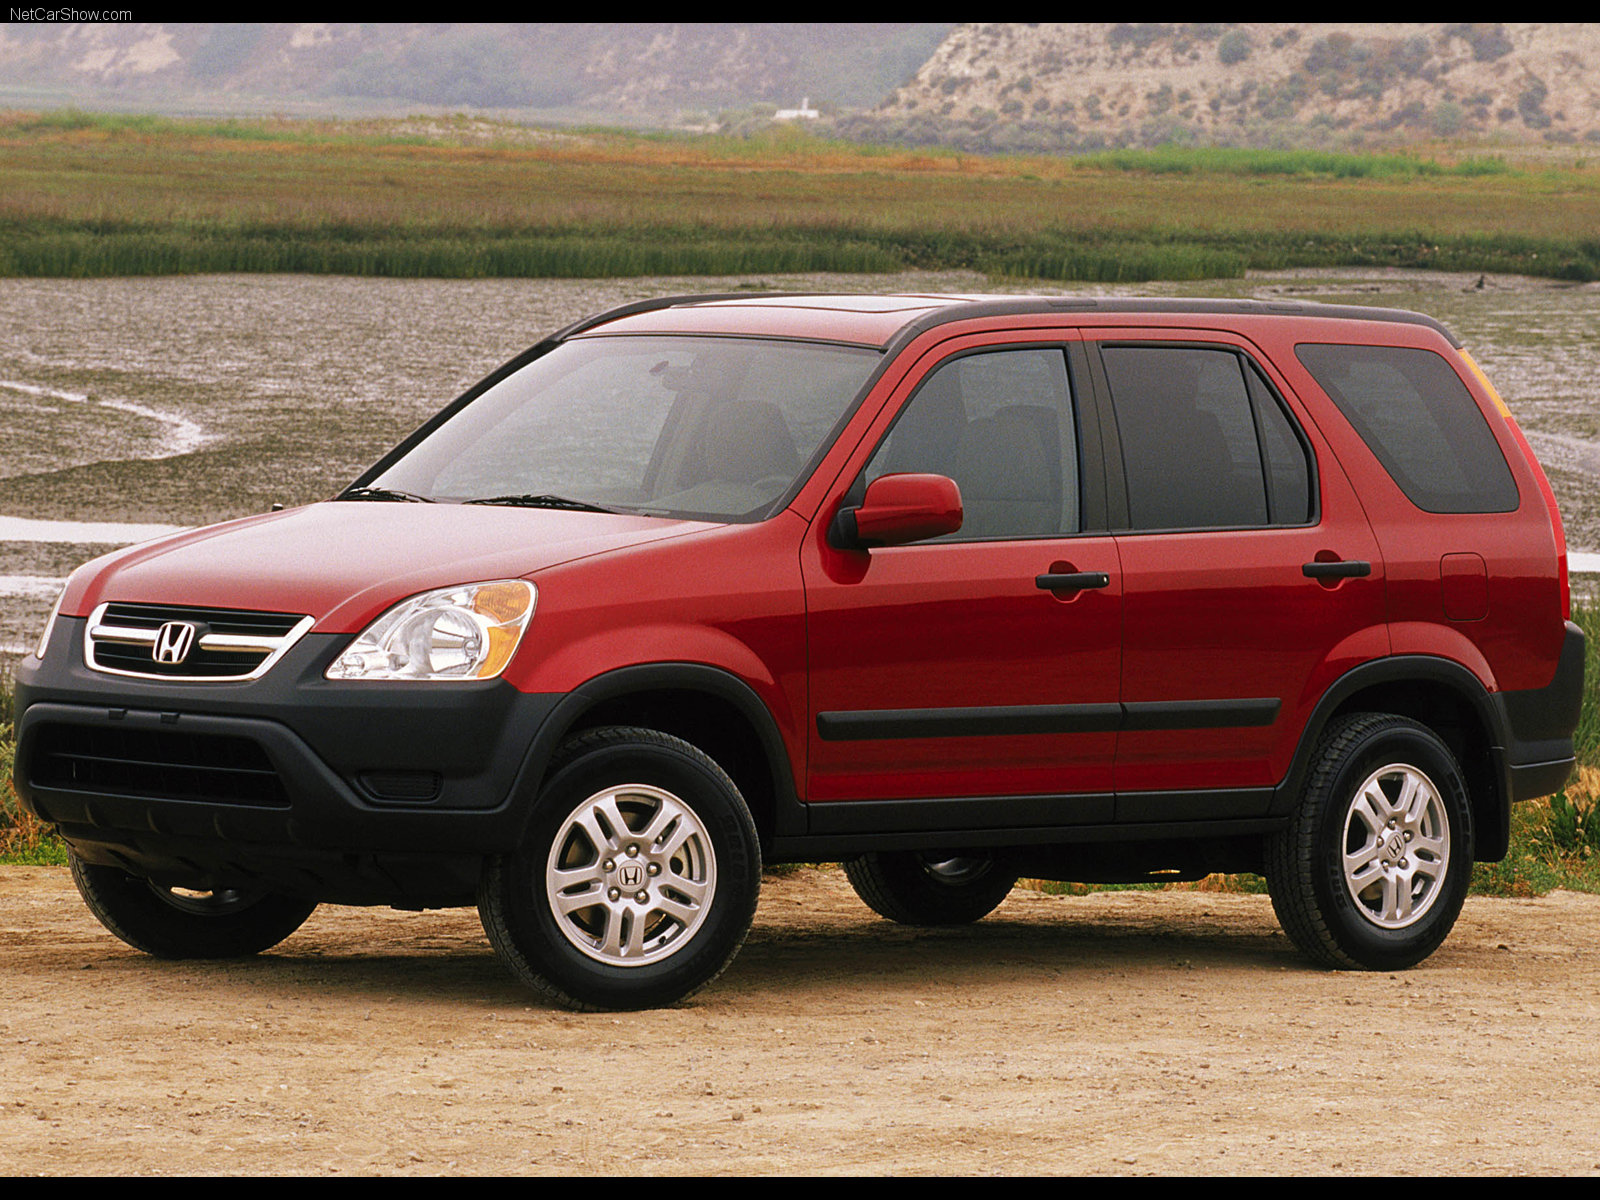 3dtuning of honda cr v crossover 2002 3dtuning     unique on line car configurator for more